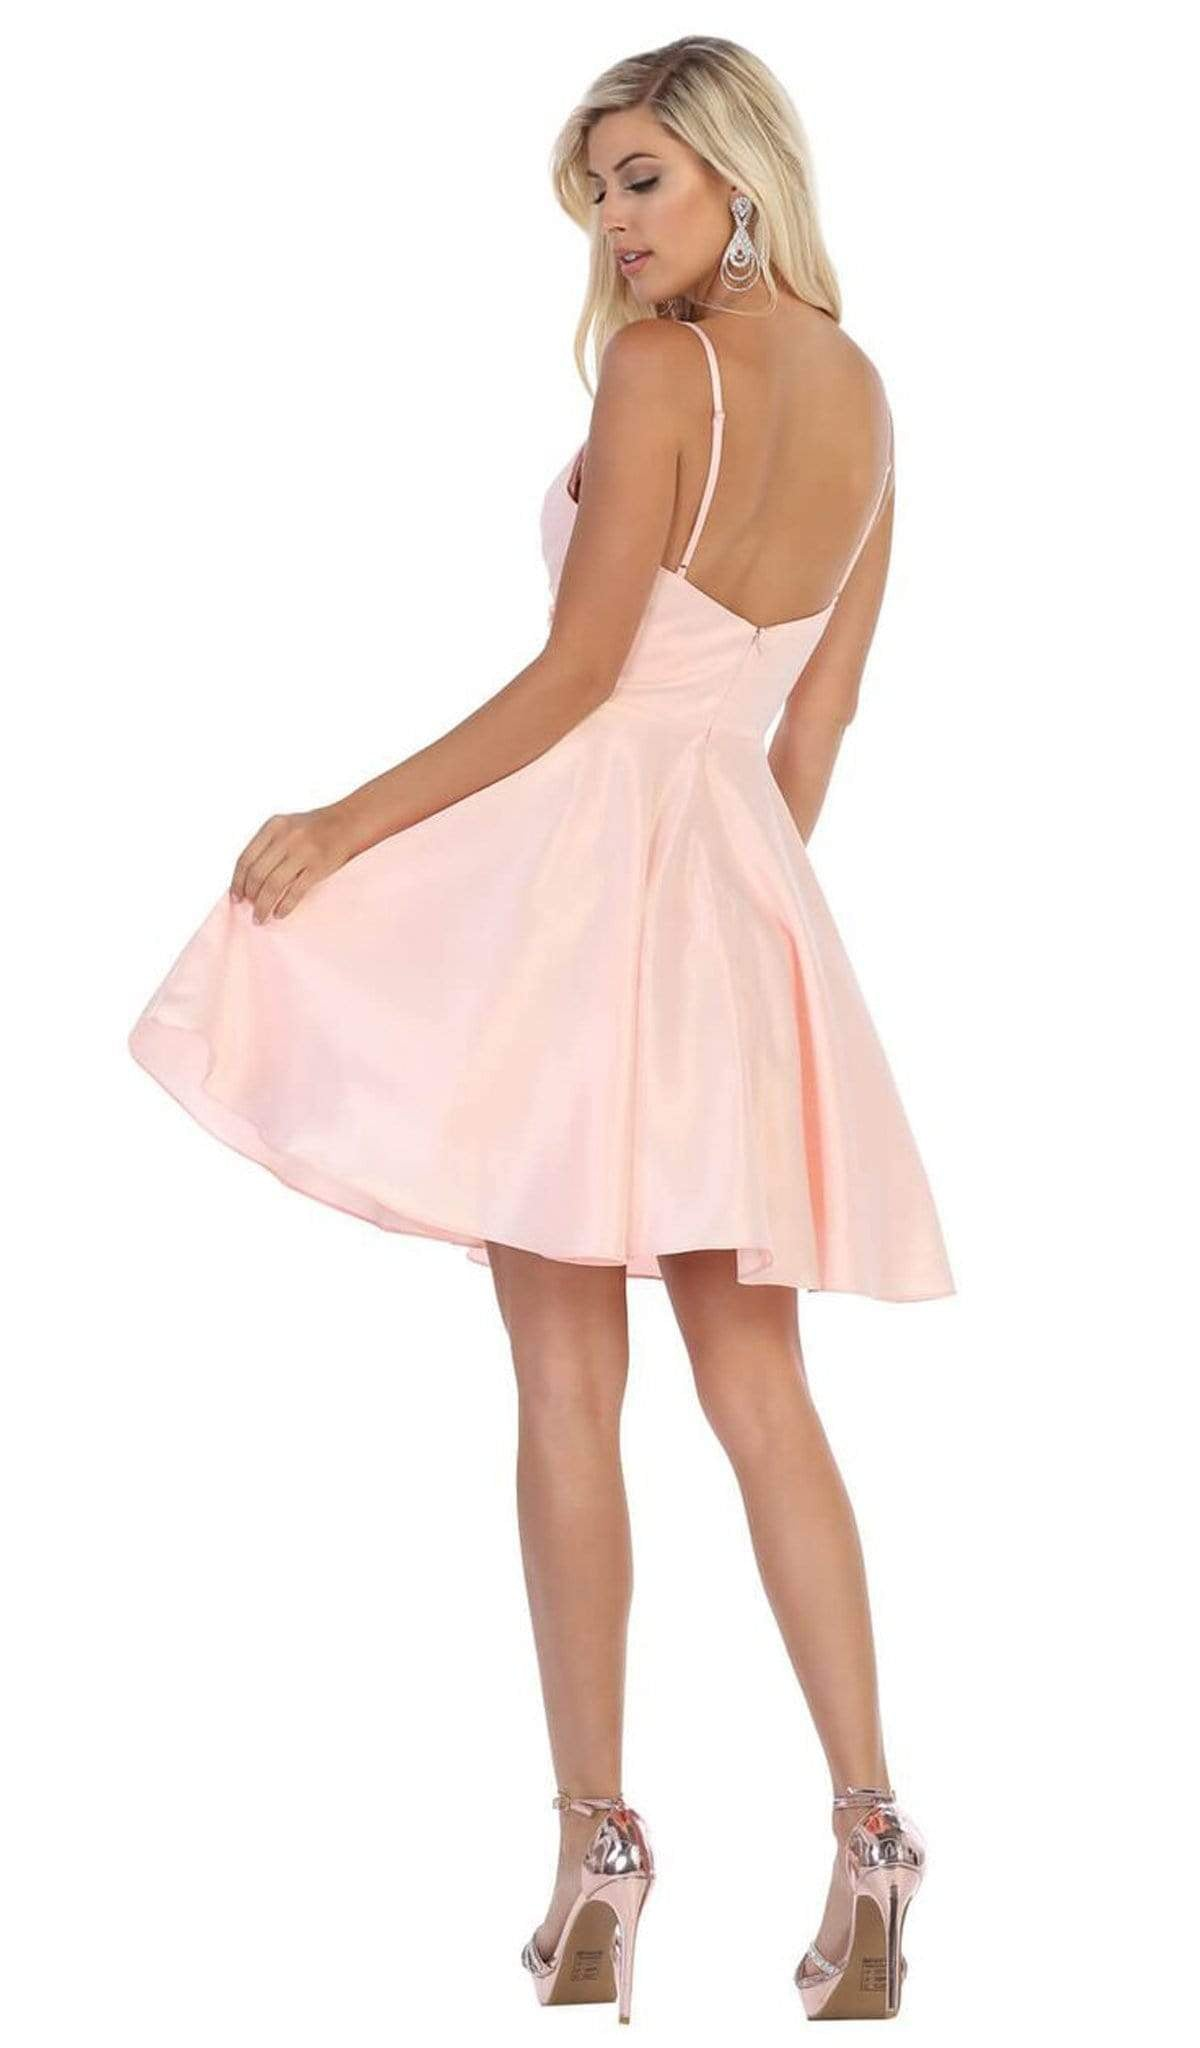 May Queen - MQ1654 V Neck Sleeveless Fit and Flare Short Dress In Pink